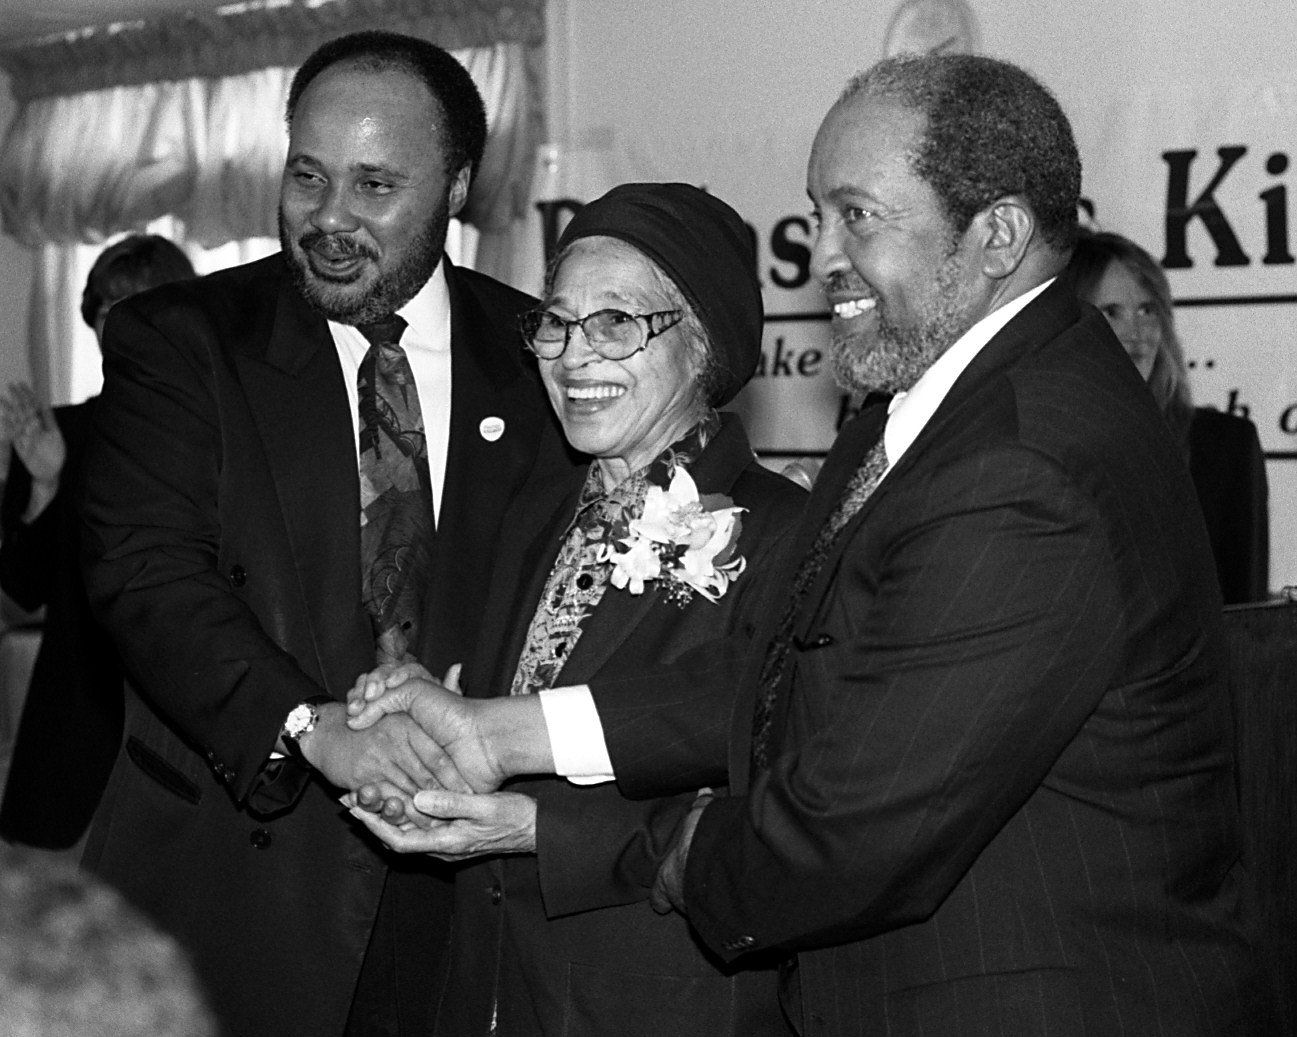 Martin Luther King III, Rosa Parks and Iman W. Deen Mohammed posed shaking hands after a Dallas Acts Kind news conference at St. Luke Community United Methodist Church. King is the son of Martin Luther King Jr. and Mohammed is the son of Elijah Mohammed, founder of the Nation of Islam. This was King and Mohammed's first meeting.